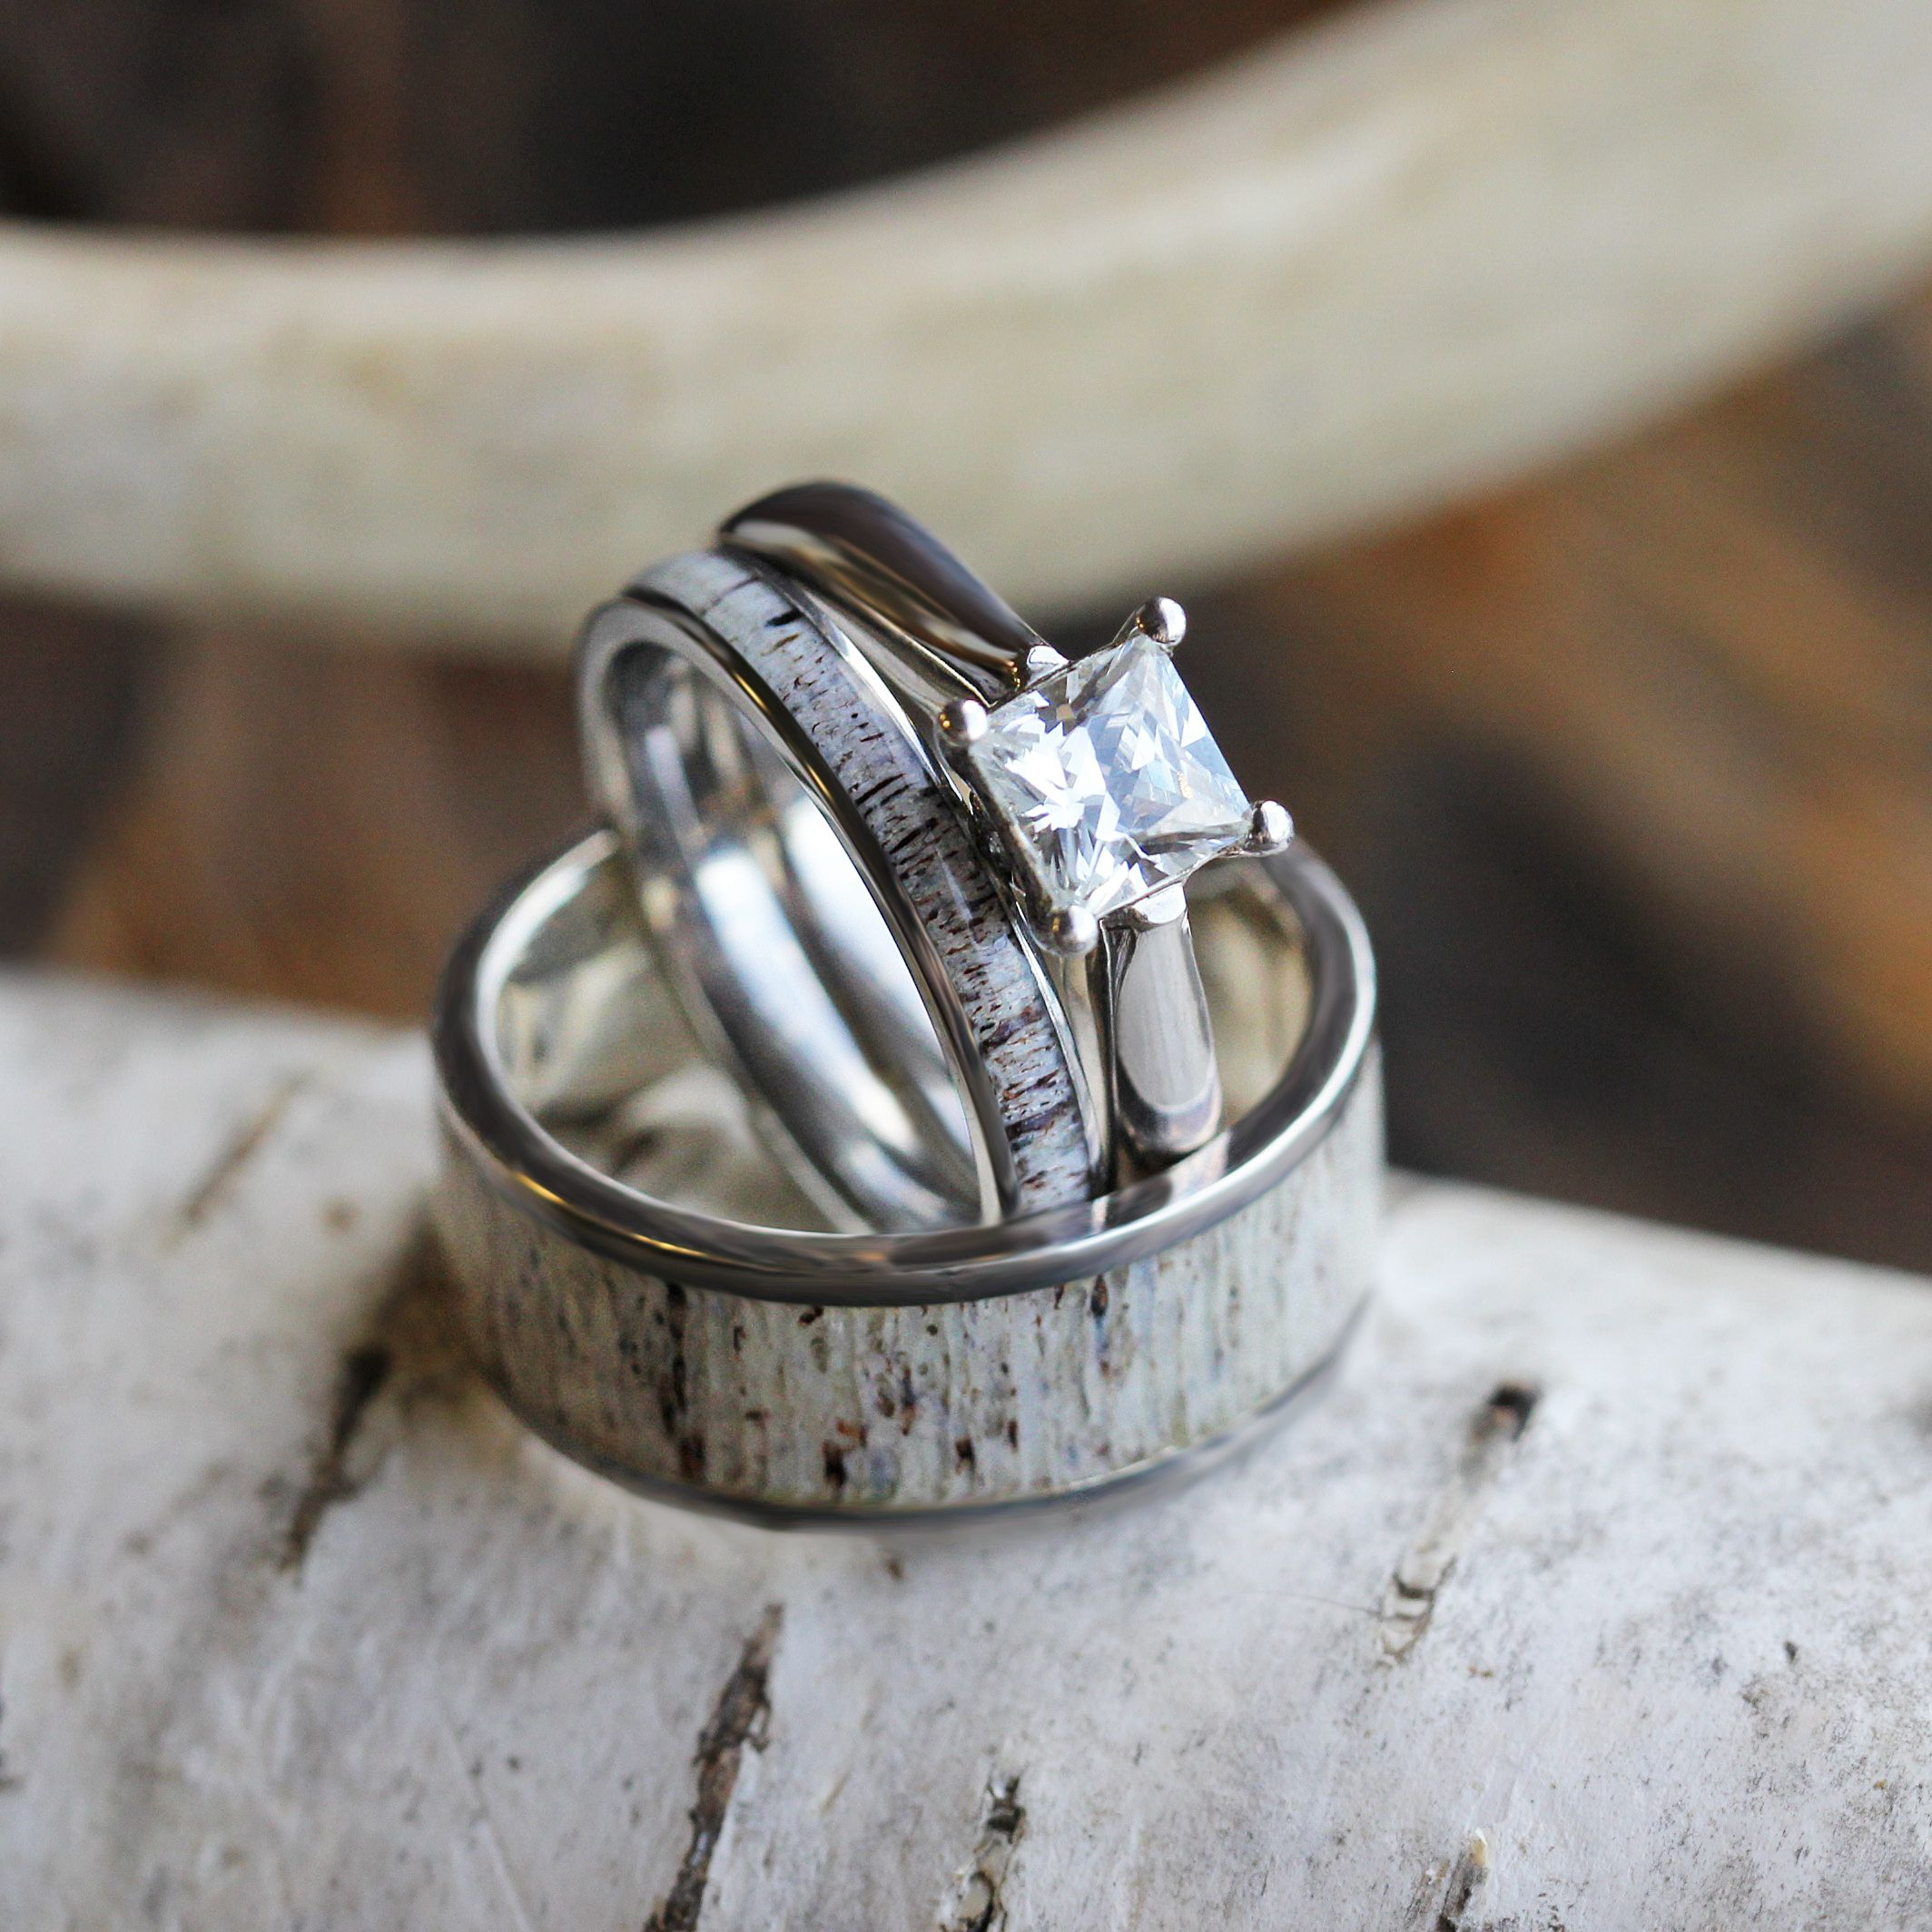 Deer antler wedding ring set his and hers matching for Wedding ring sets for her